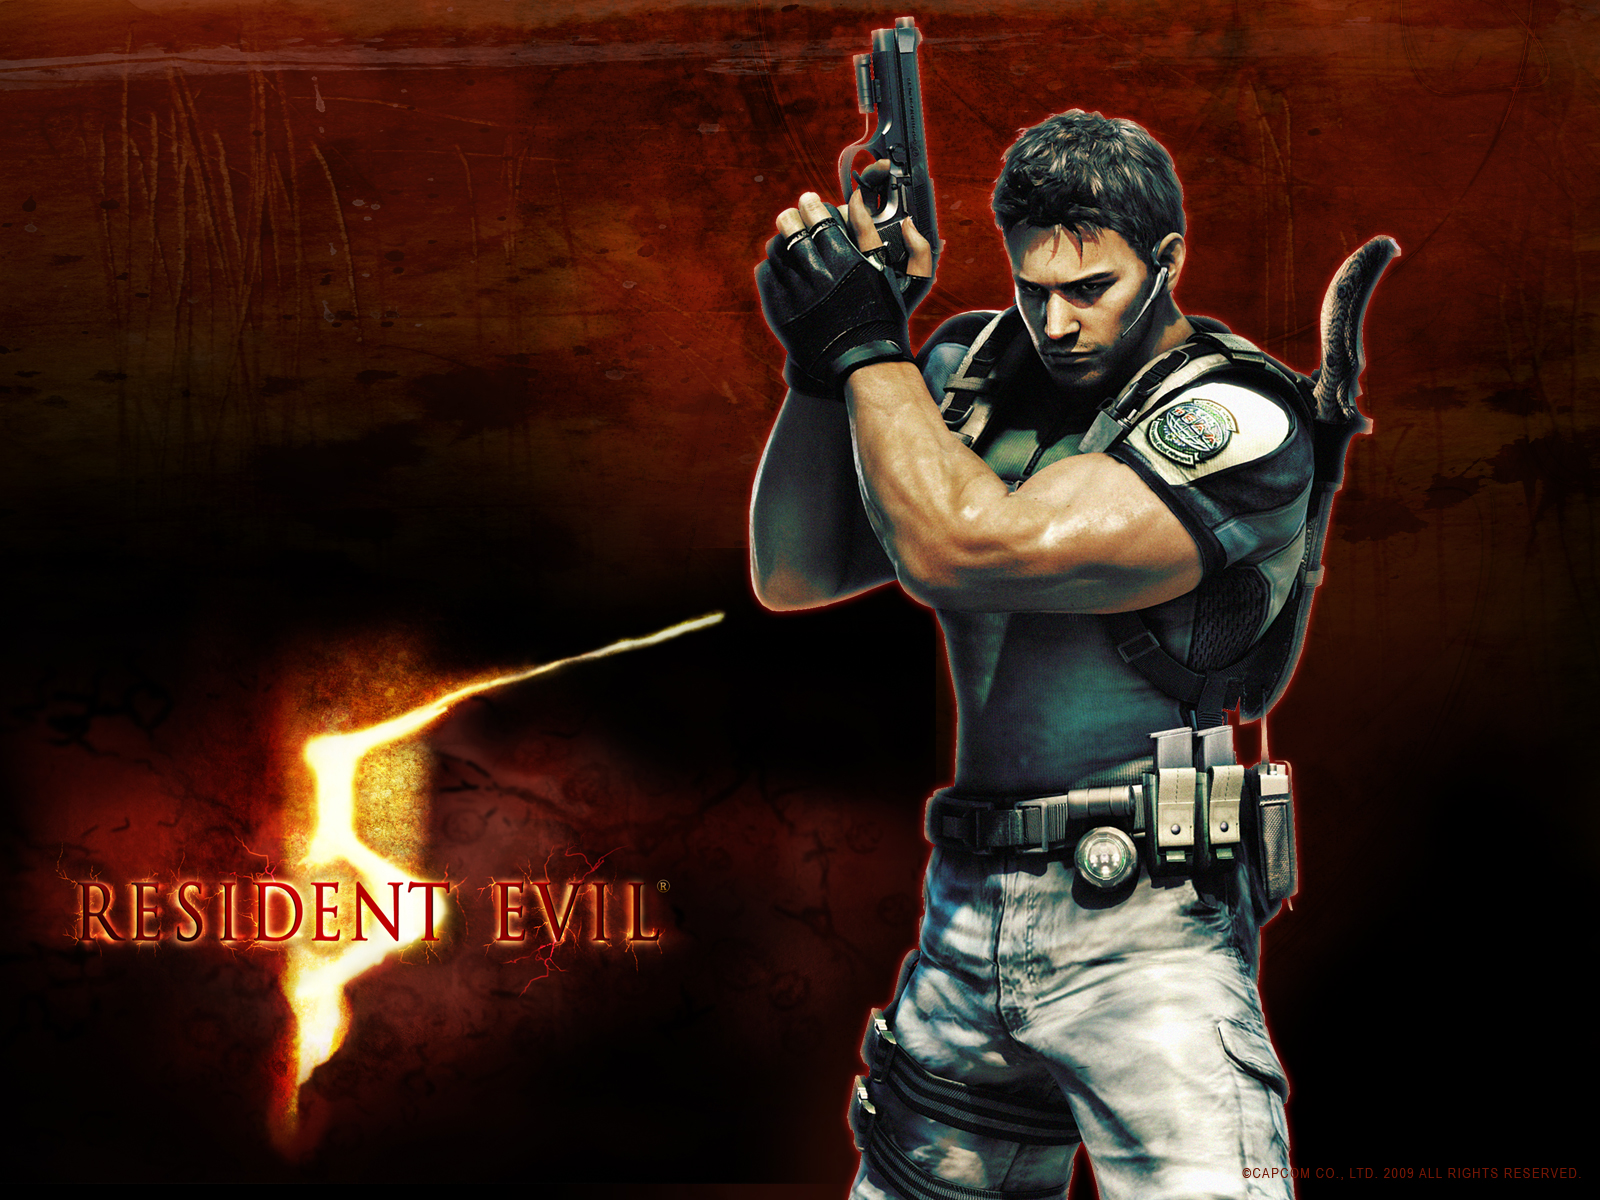 Wallpapers juegos Resident-evil-5-wallpaper-2-1600-503544